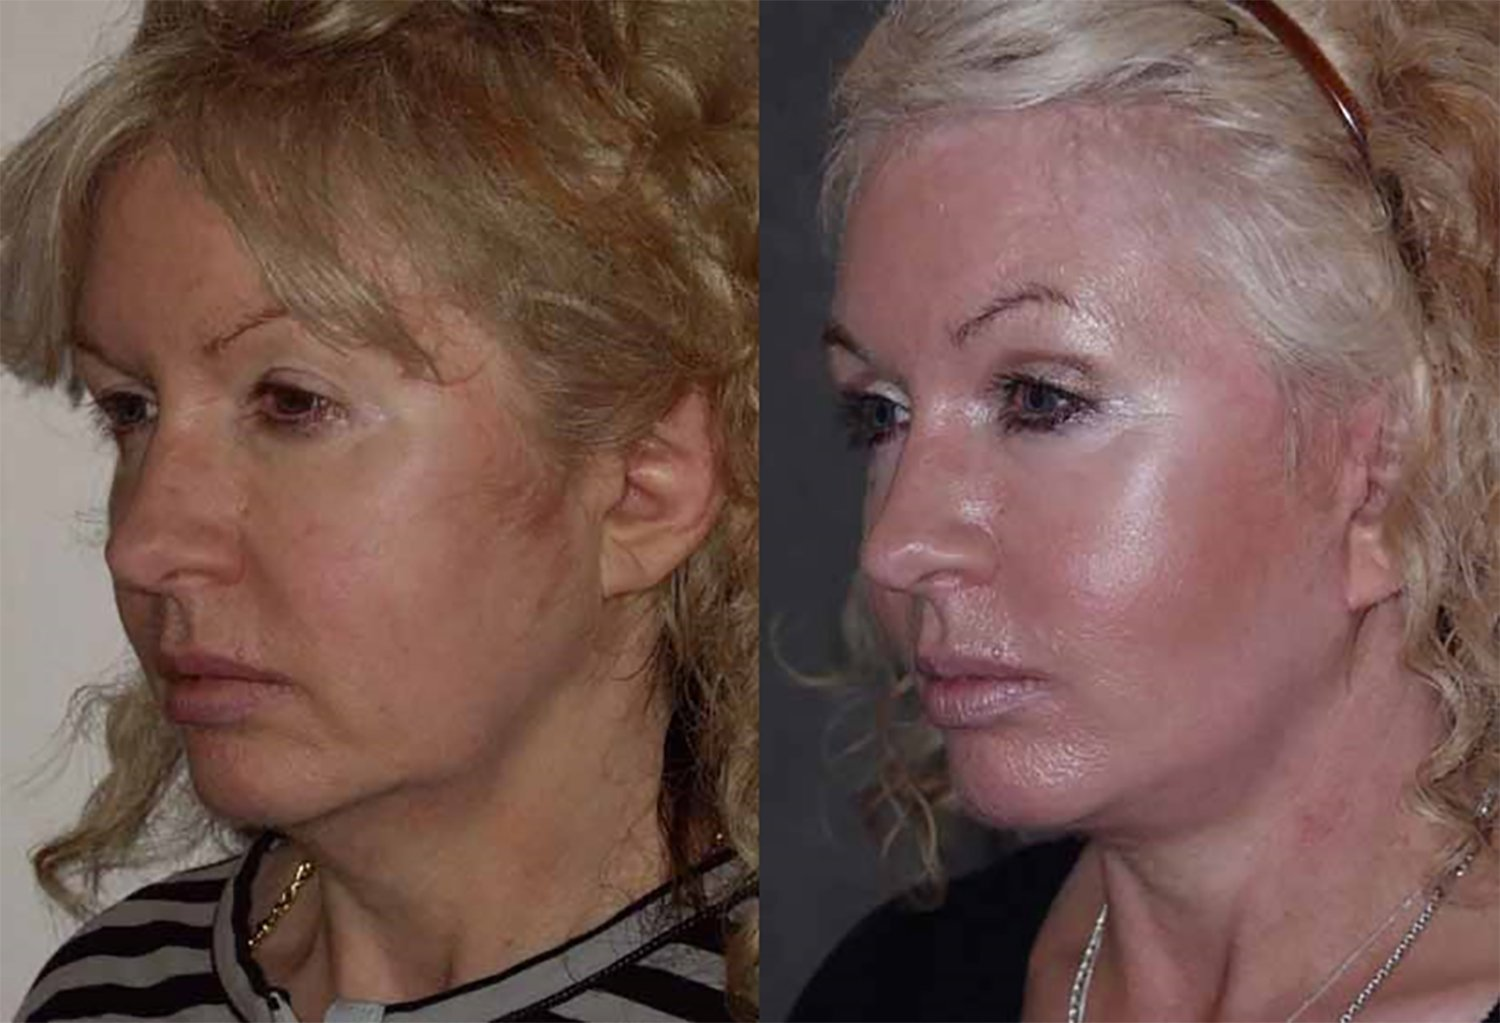 50-year-old facelift upper eyelids one year, prior facelift 10 yrs before, oblique